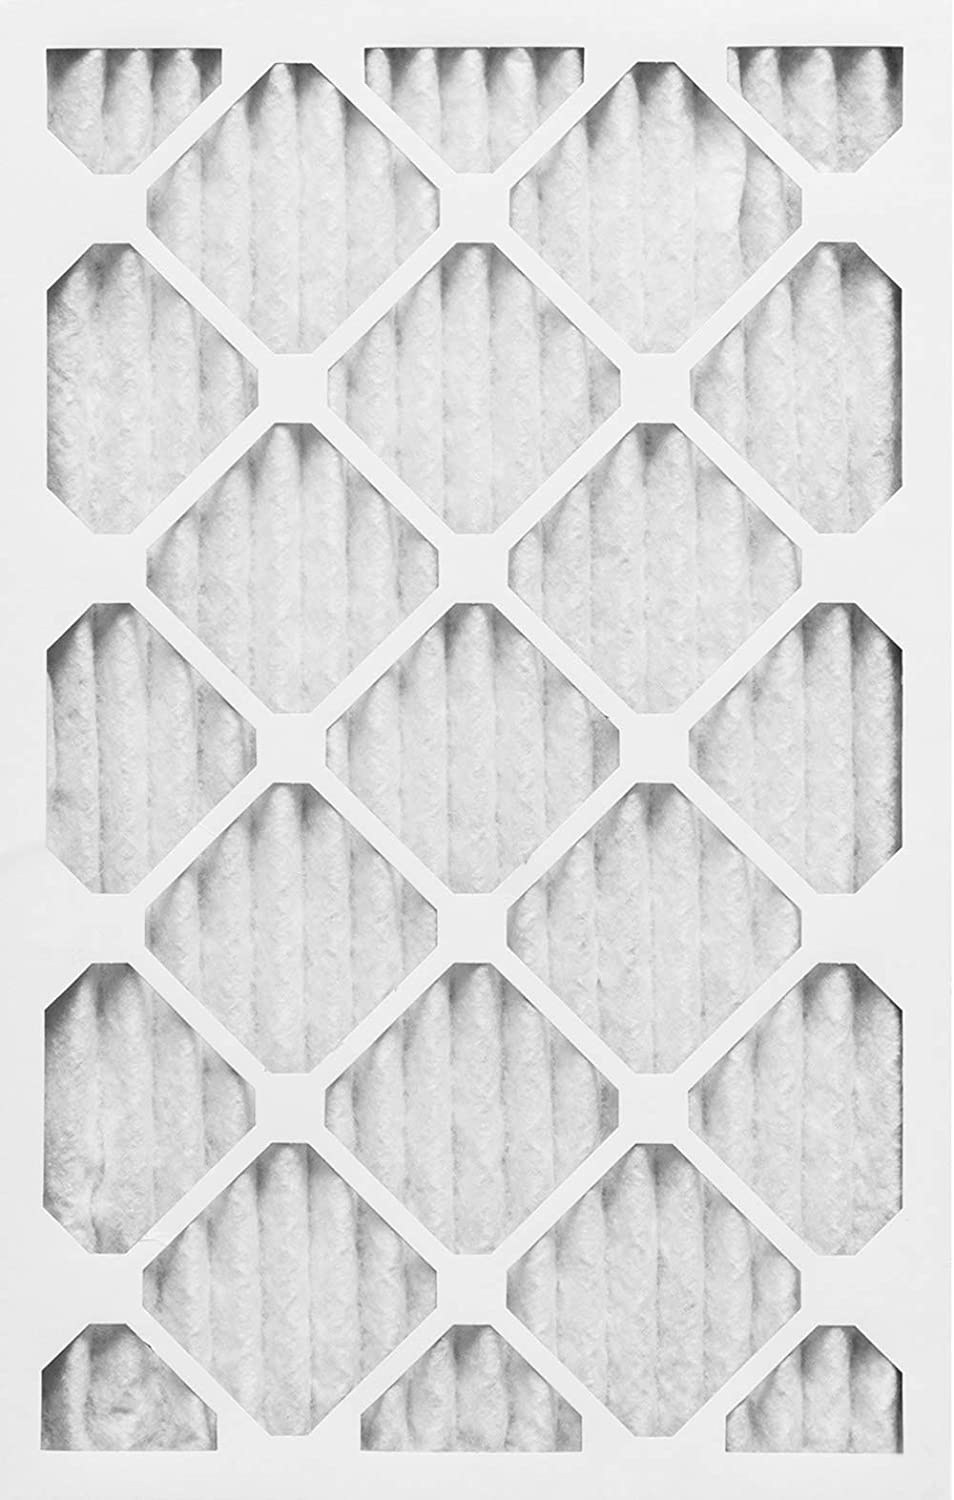 Nordic Pure 17/_1//4x29/_1//4x1 Exact MERV 13 Pleated AC Furnace Air Filters 6 Pack